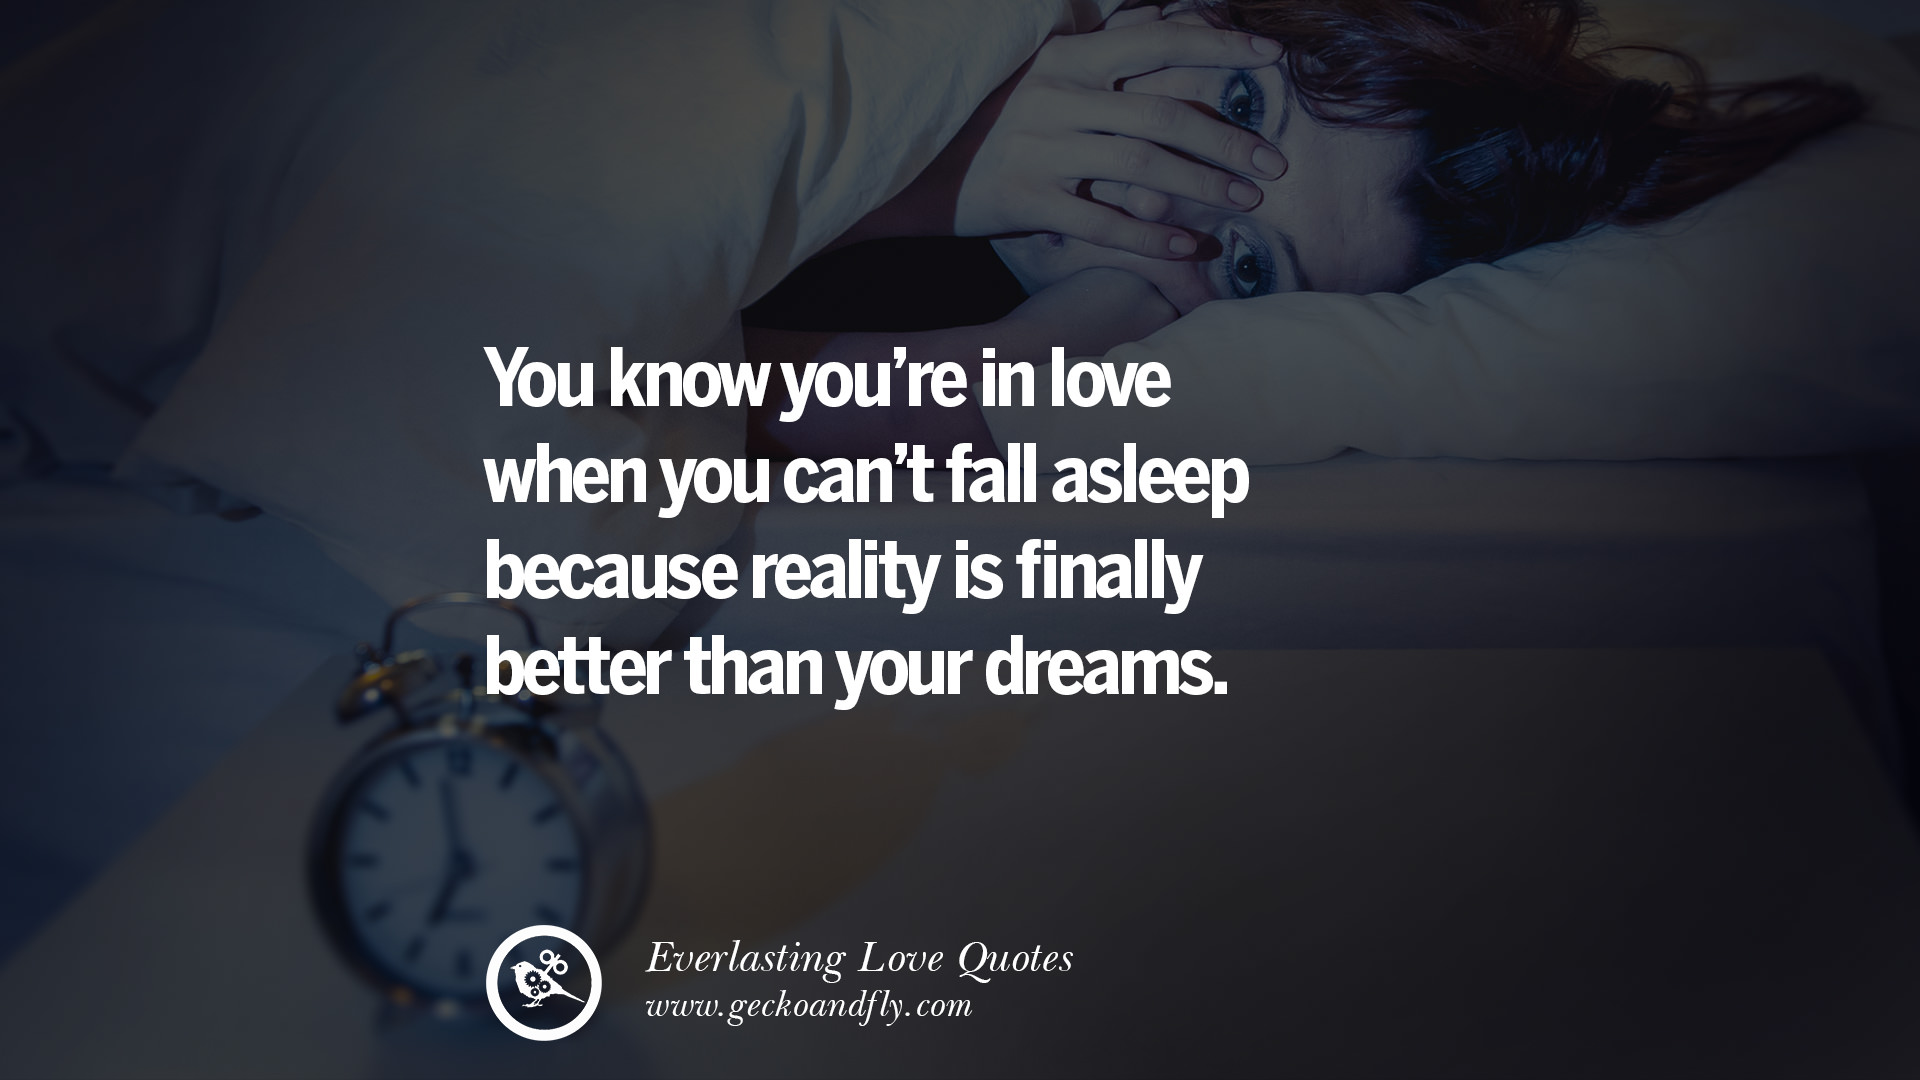 In Love Quotes 18 Romantic Love Quotes For Him And Her On Valentine Day